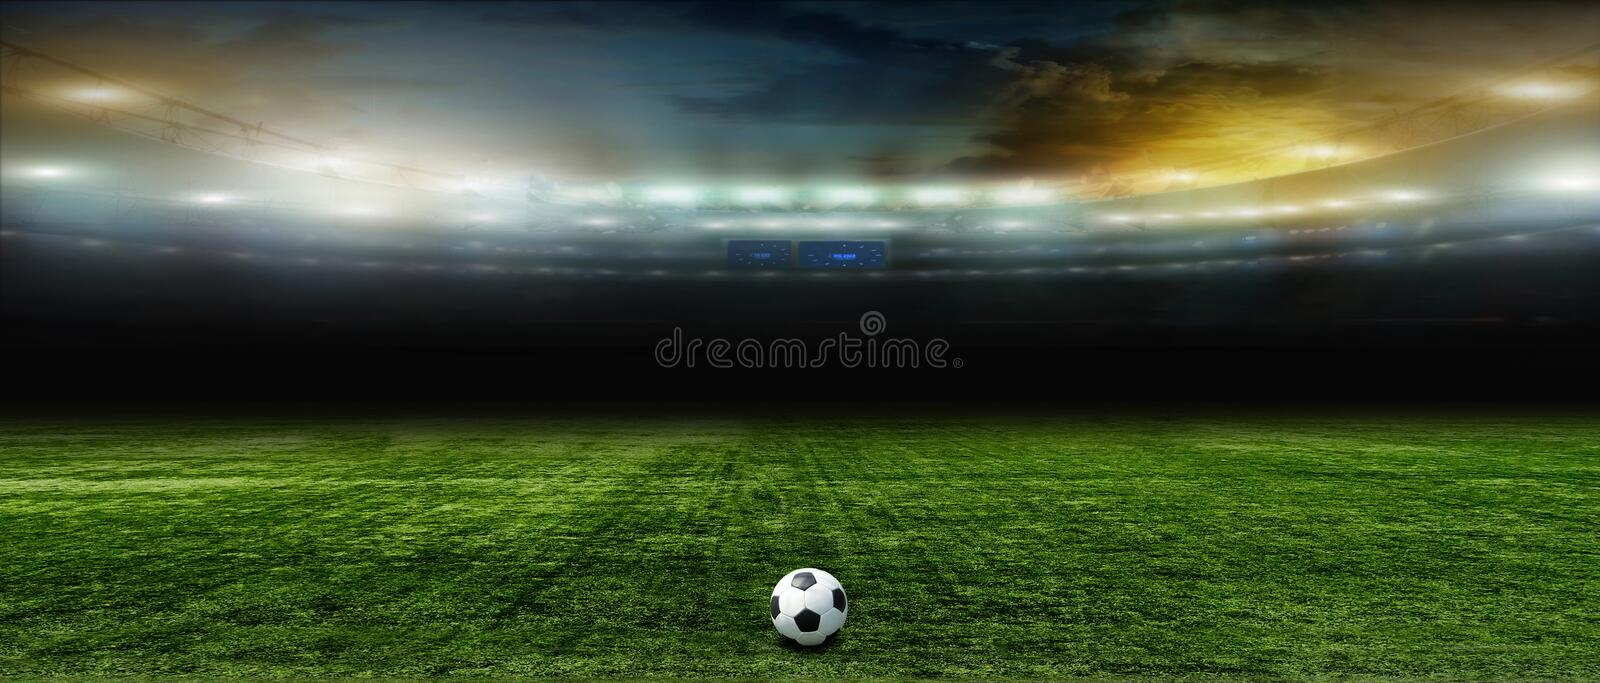 Fundos abstratos do futebol ou do futebol fotografia de stock royalty free